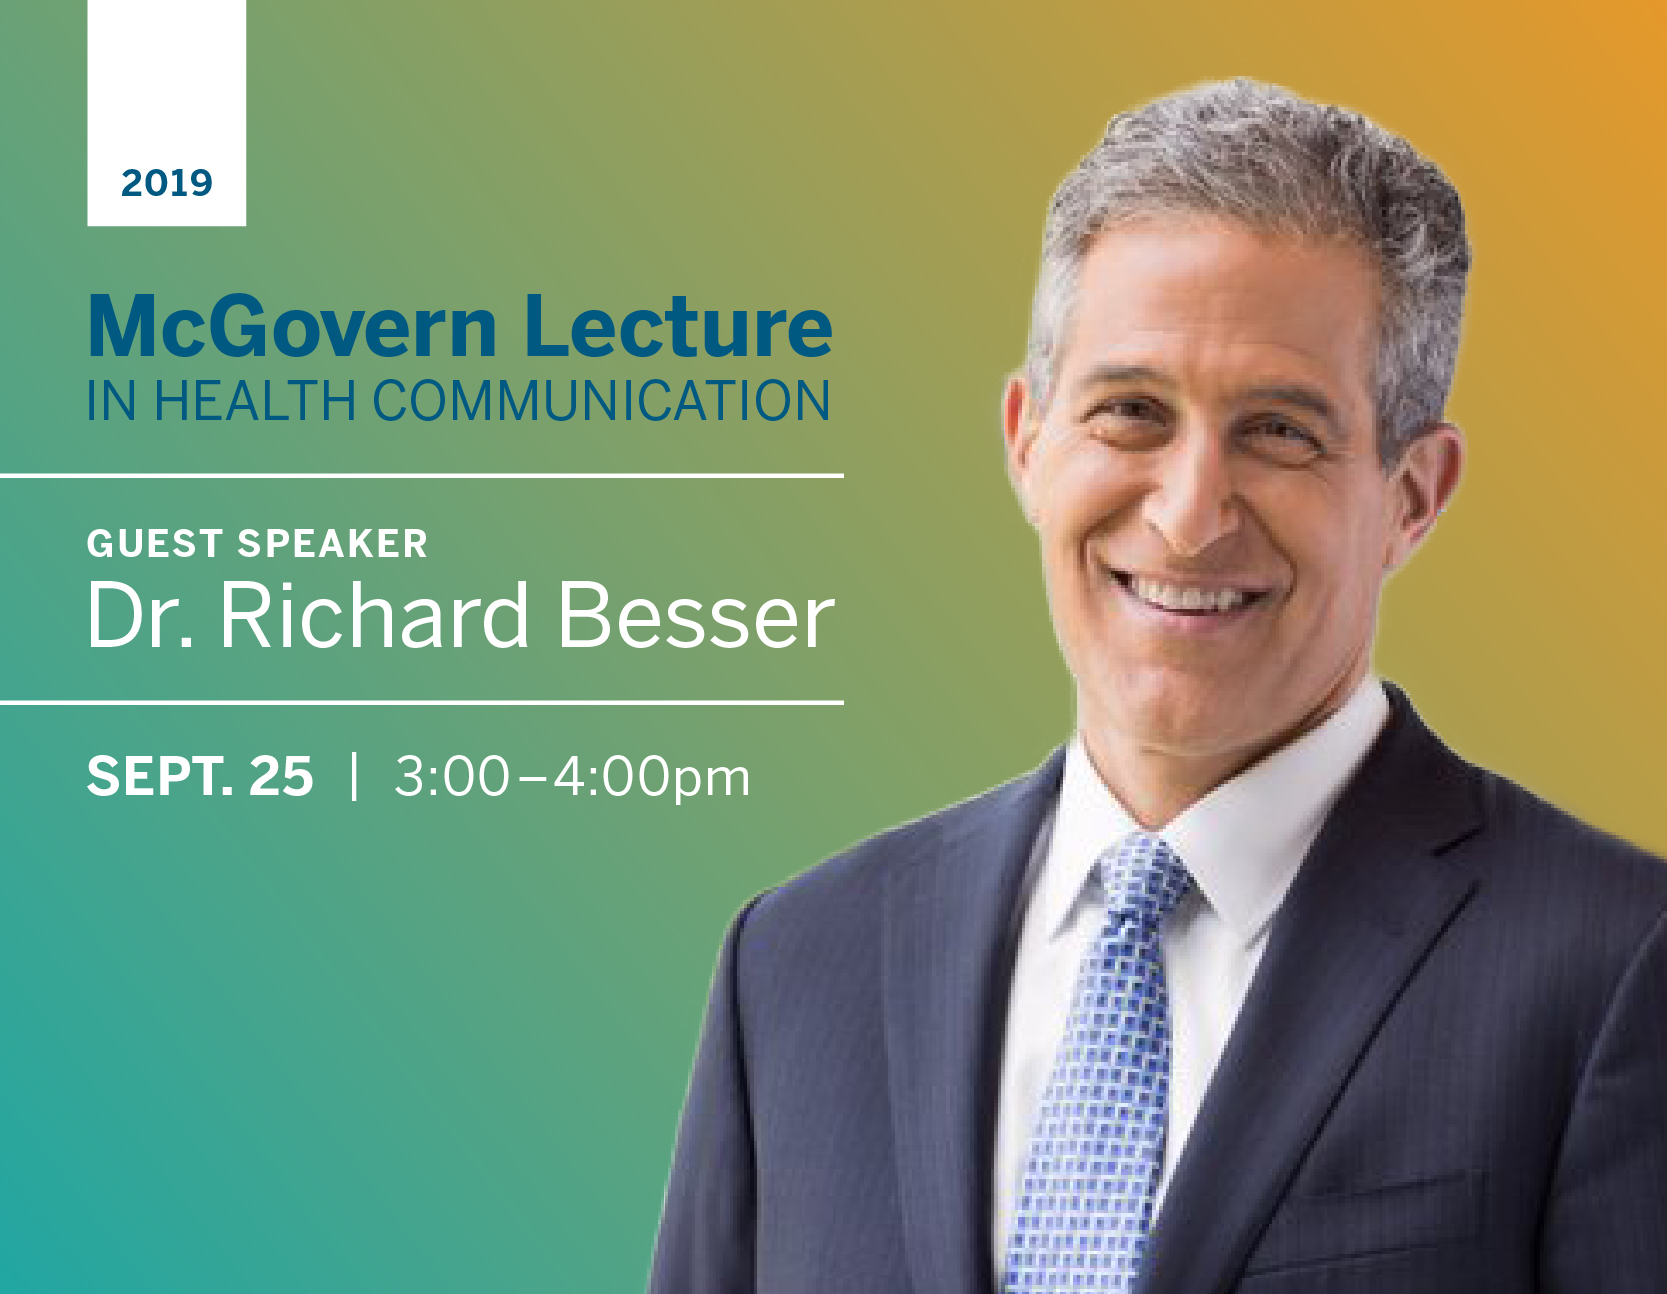 2019 McGovern Lecture in Health Communication